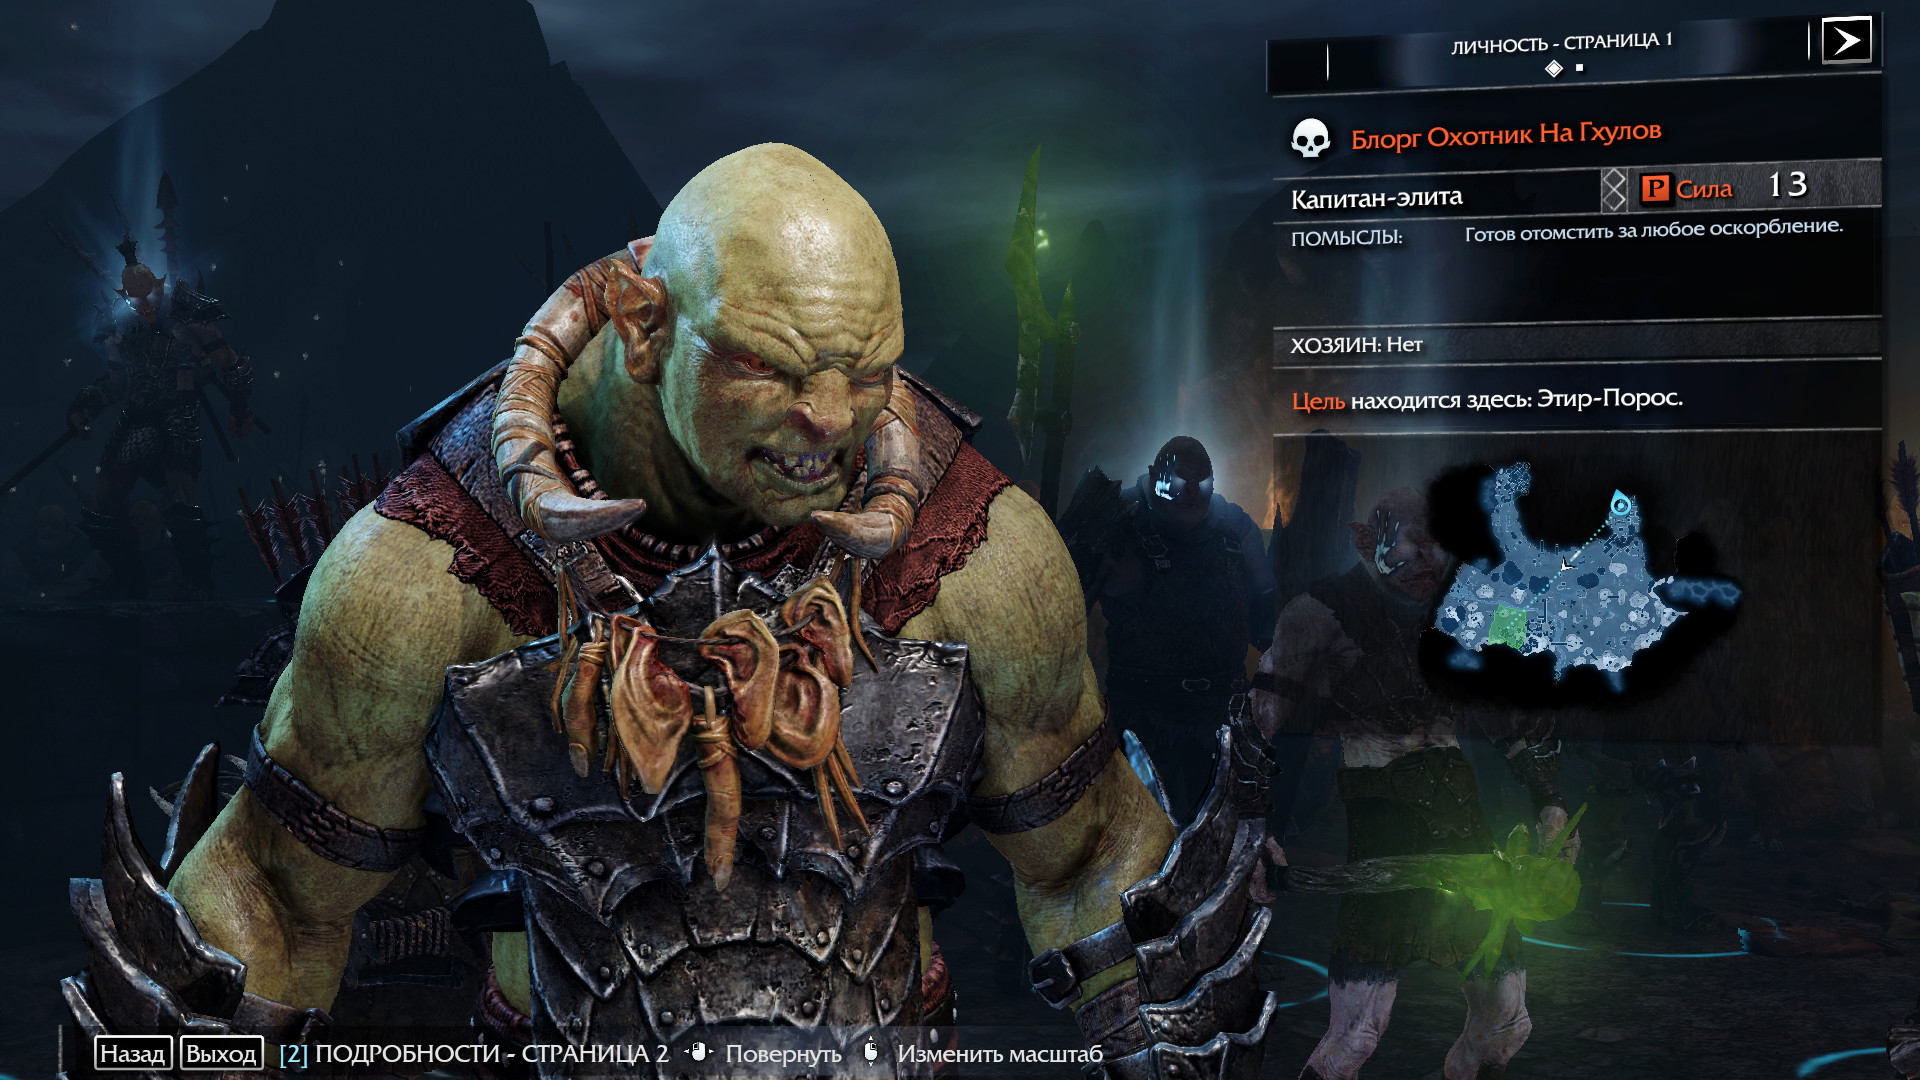 ShadowOfMordor 2016-10-25 20-12-56-57.jpg - Middle-earth: Shadow of Mordor